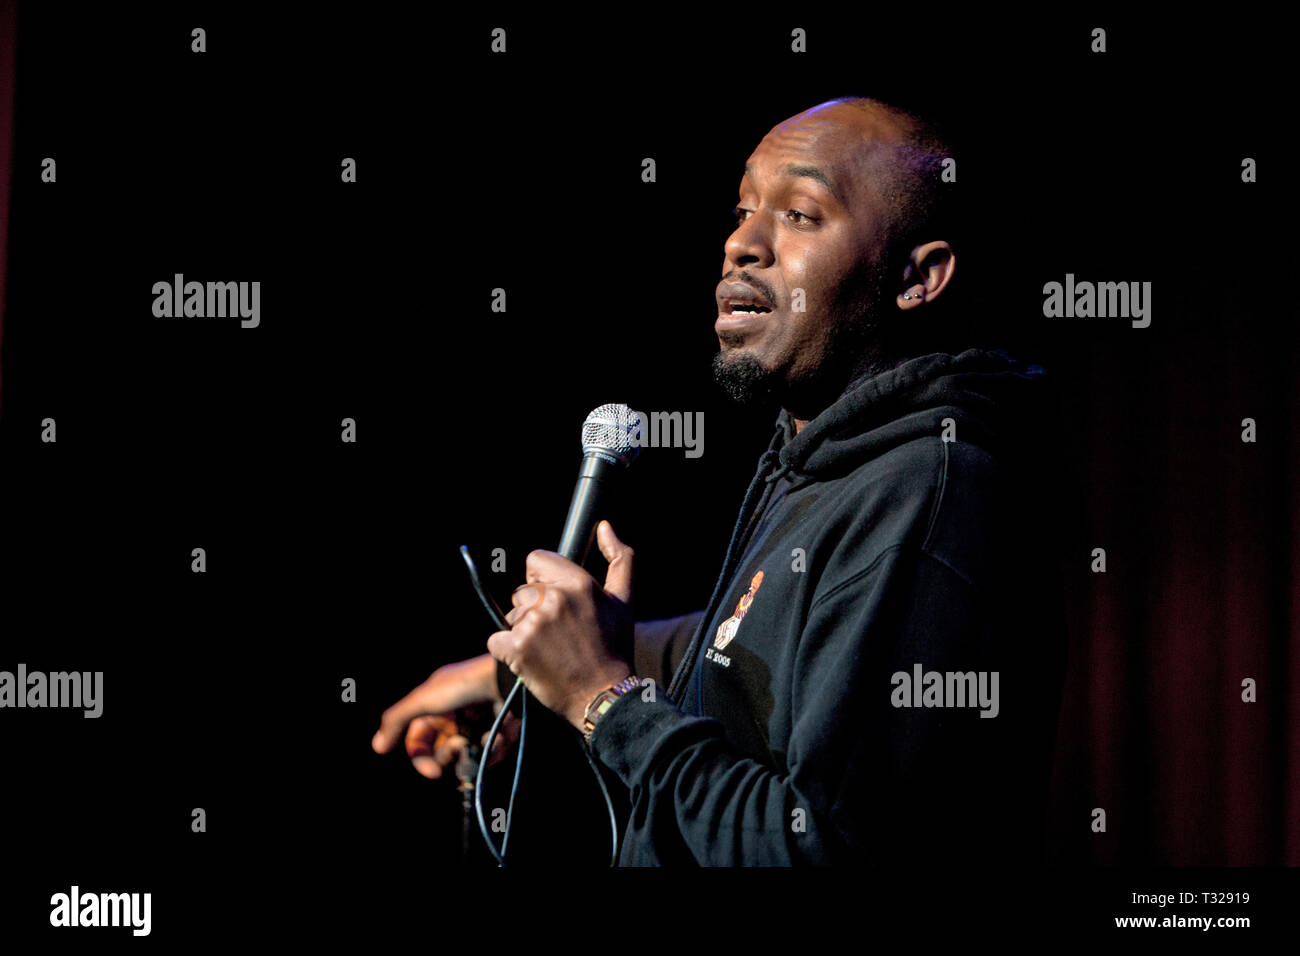 Comedian Dane Baptiste, star of Live seen during The Apollo, 8 Out of 10 Cats, and his own hit BBC sitcom Sunny D play at The Comedy Crate in Picturedrome, Northampton. - Stock Image